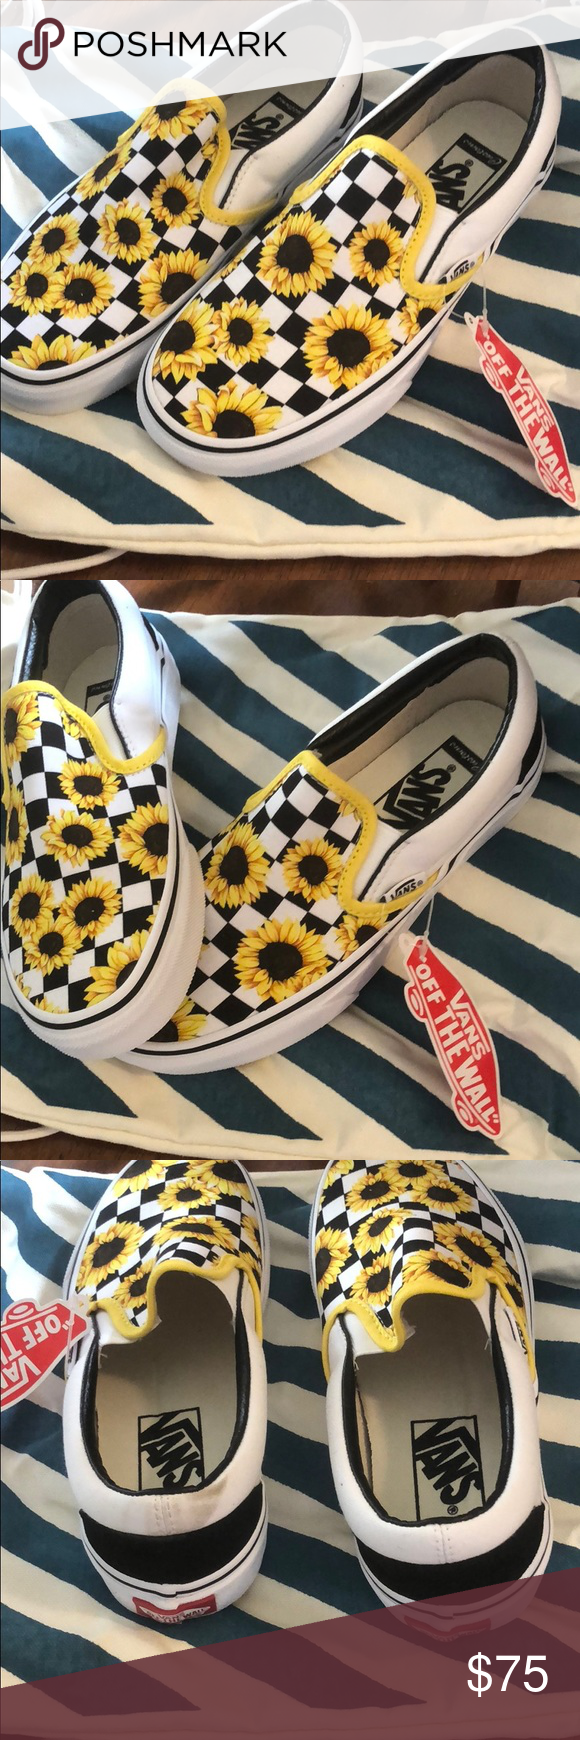 Custom sunflower Vans slip on BNWT! I ordered the wrong size so my loss is your  gain! These are BOYS SIZE 4 Classic Slip On Vans. Super cute black and  white ... 10016a72e